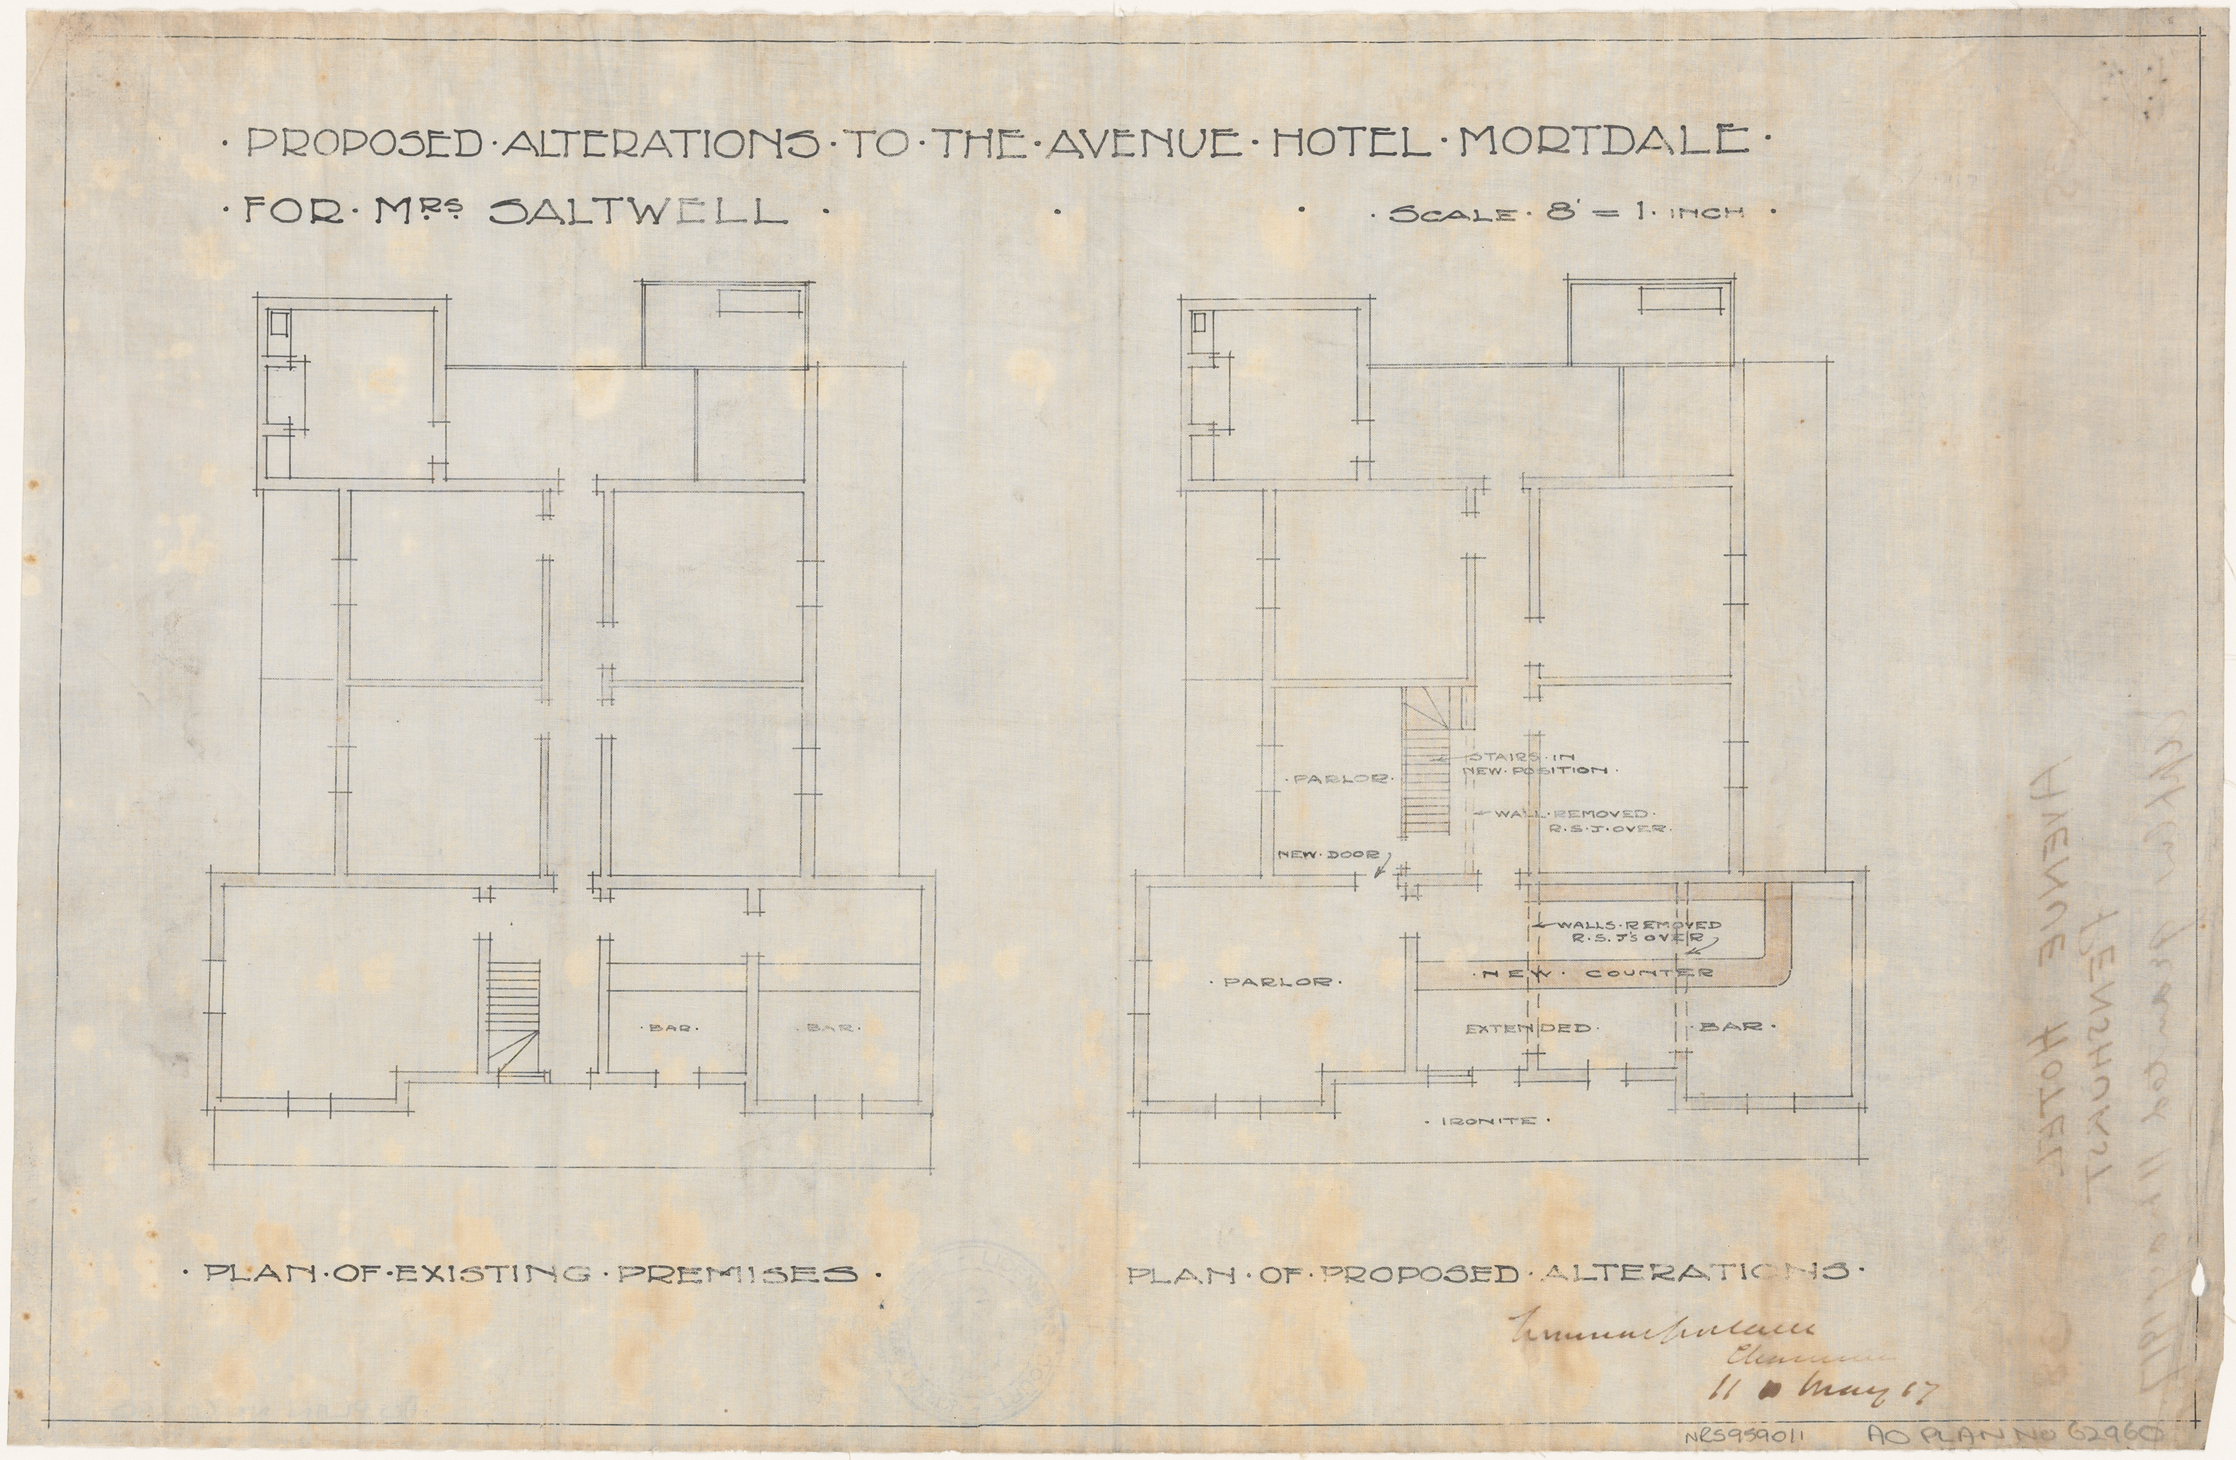 Avenue Hotel, Mortdale, Proposed alterations, plan of existing premises and proposed alterations, Applicant/owner, Mrs Saltwell.  Application Granted 11 May 1917